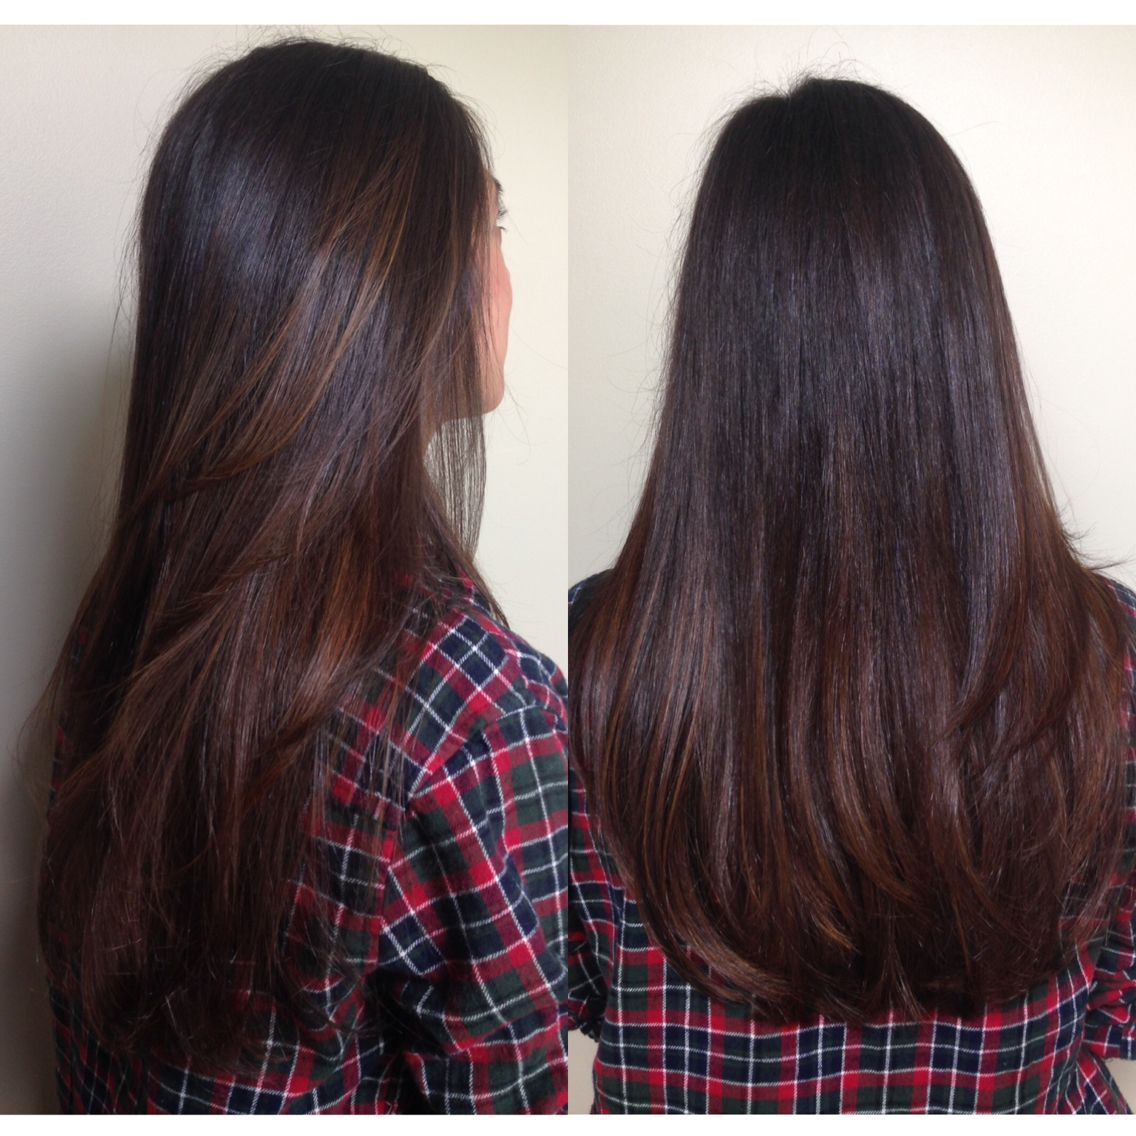 Long Dark Brown Hair Color With Highlights And Layers Ig Ashleymichellebeaut Balayage Hair Brunette Straight Balayage Straight Hair Brunette Balayage Hair